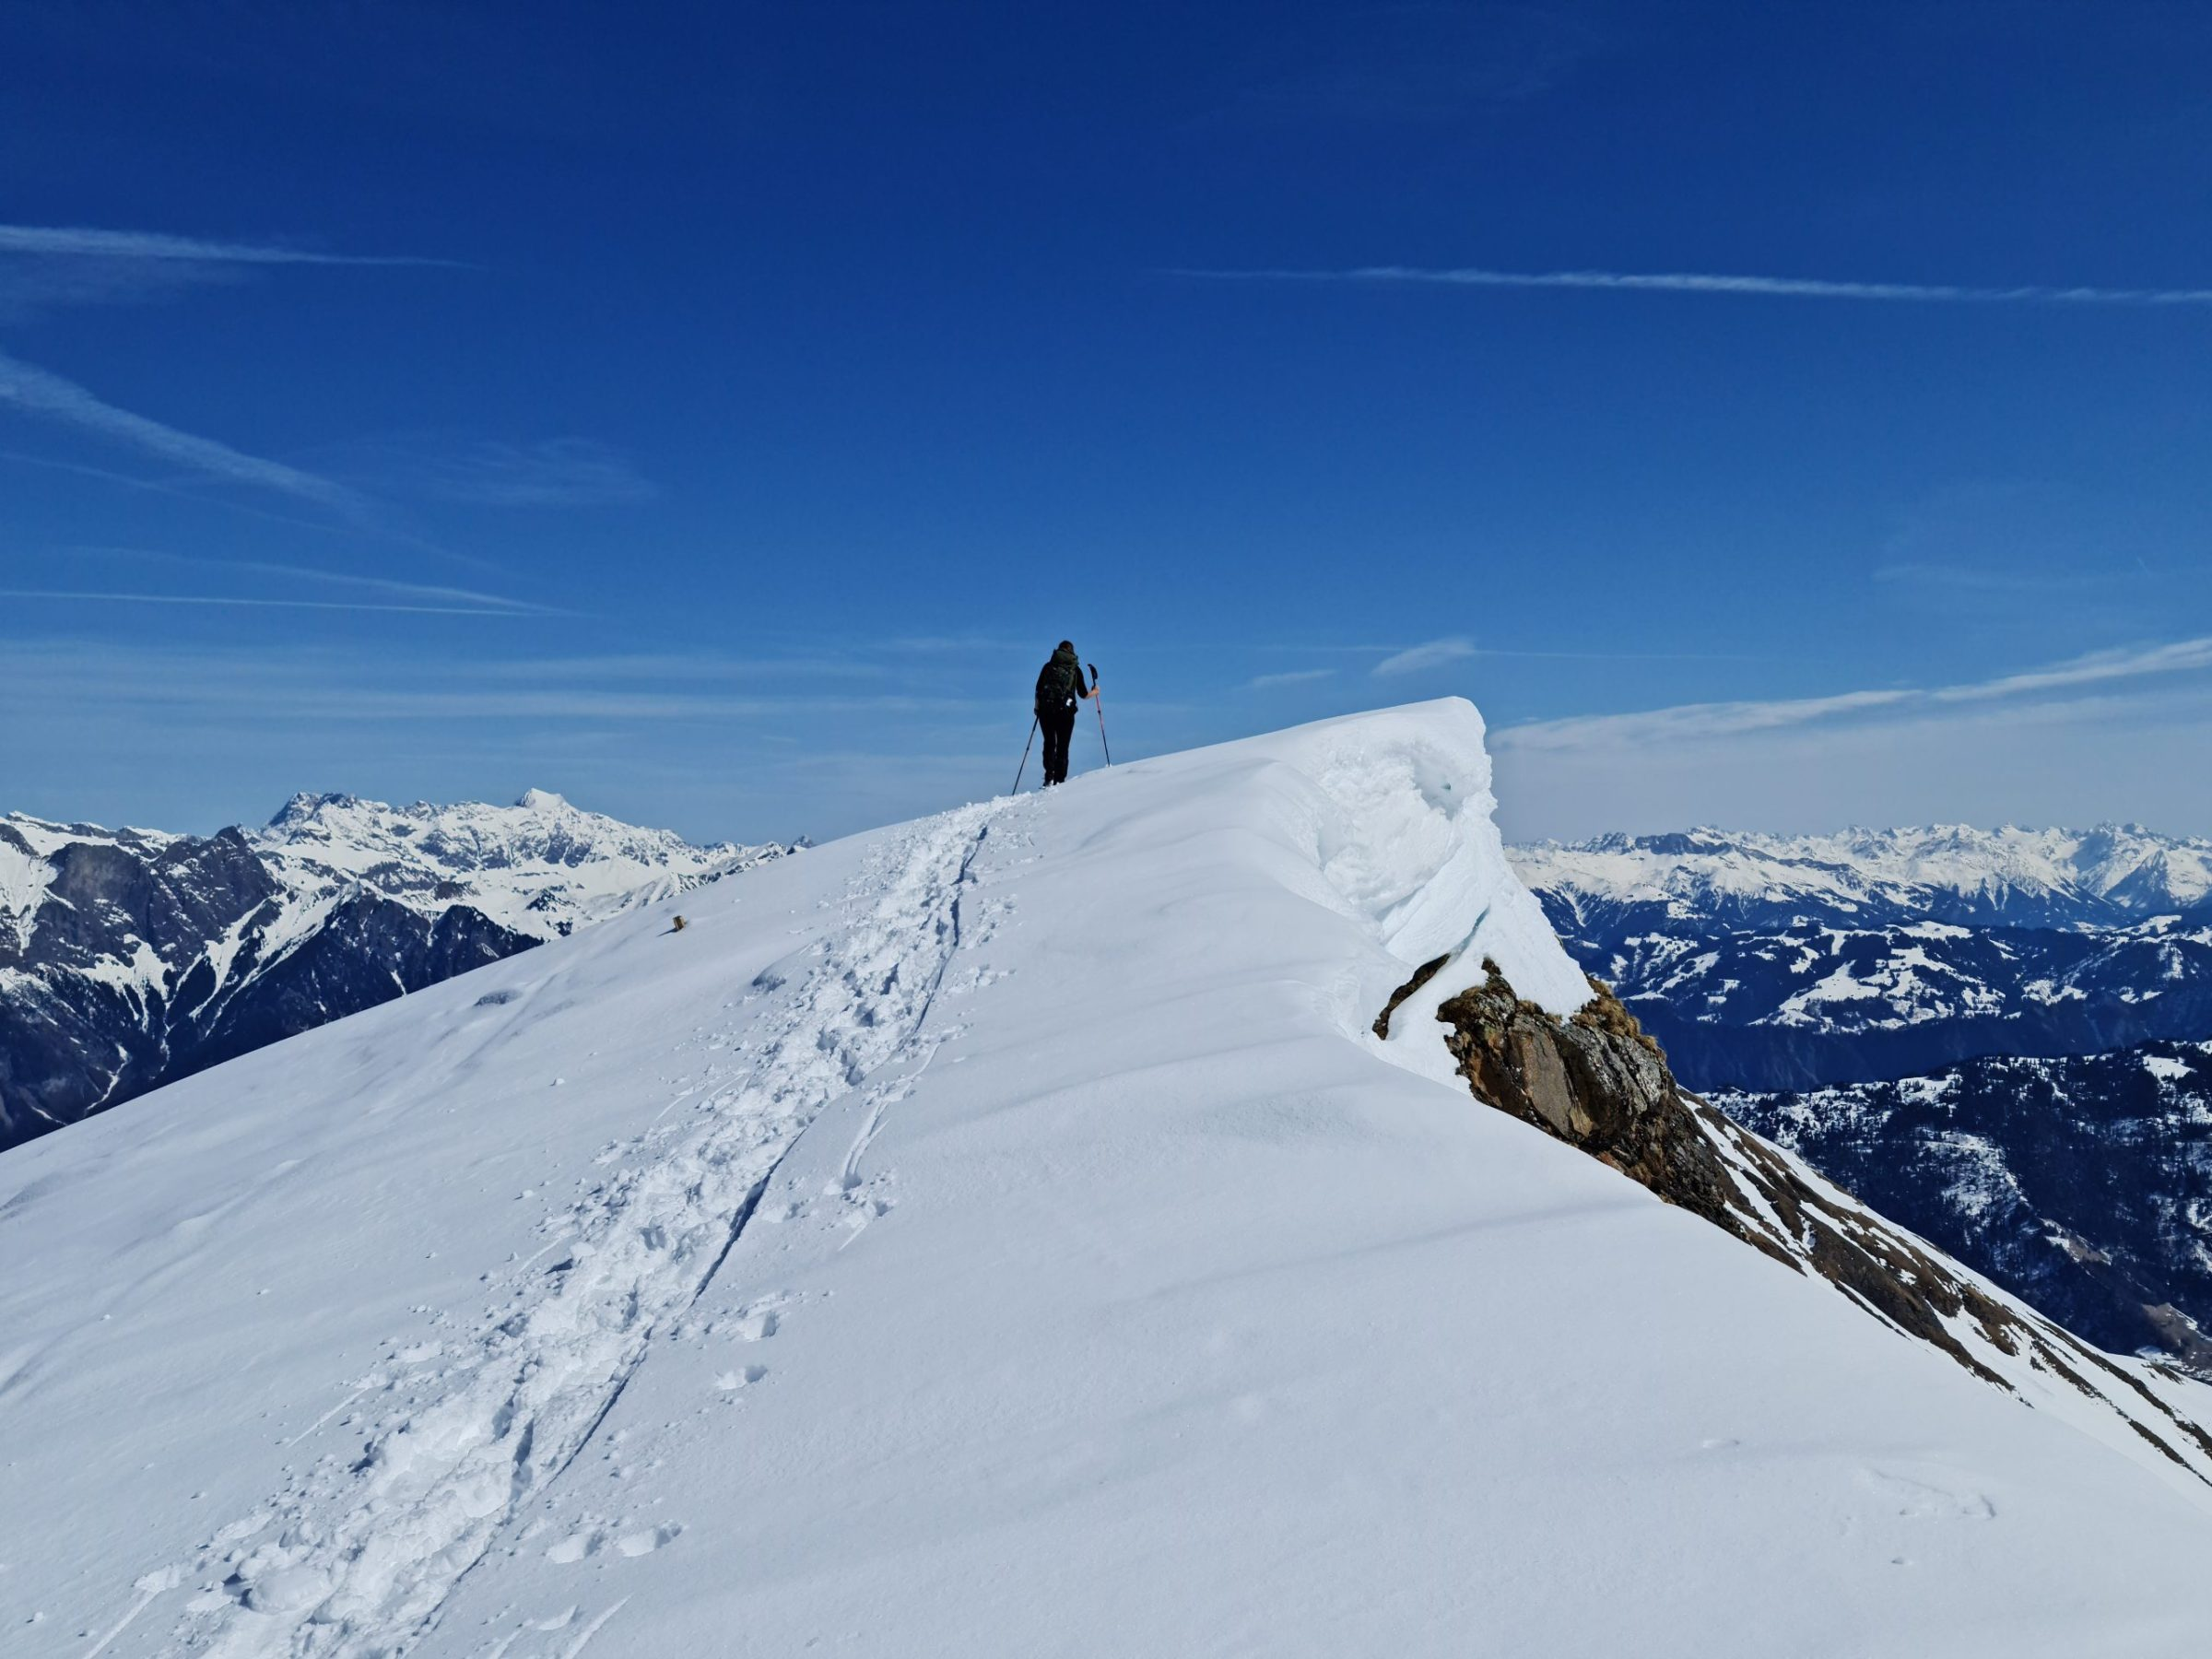 On the cusp of the ridge - look at the height of the snow layers